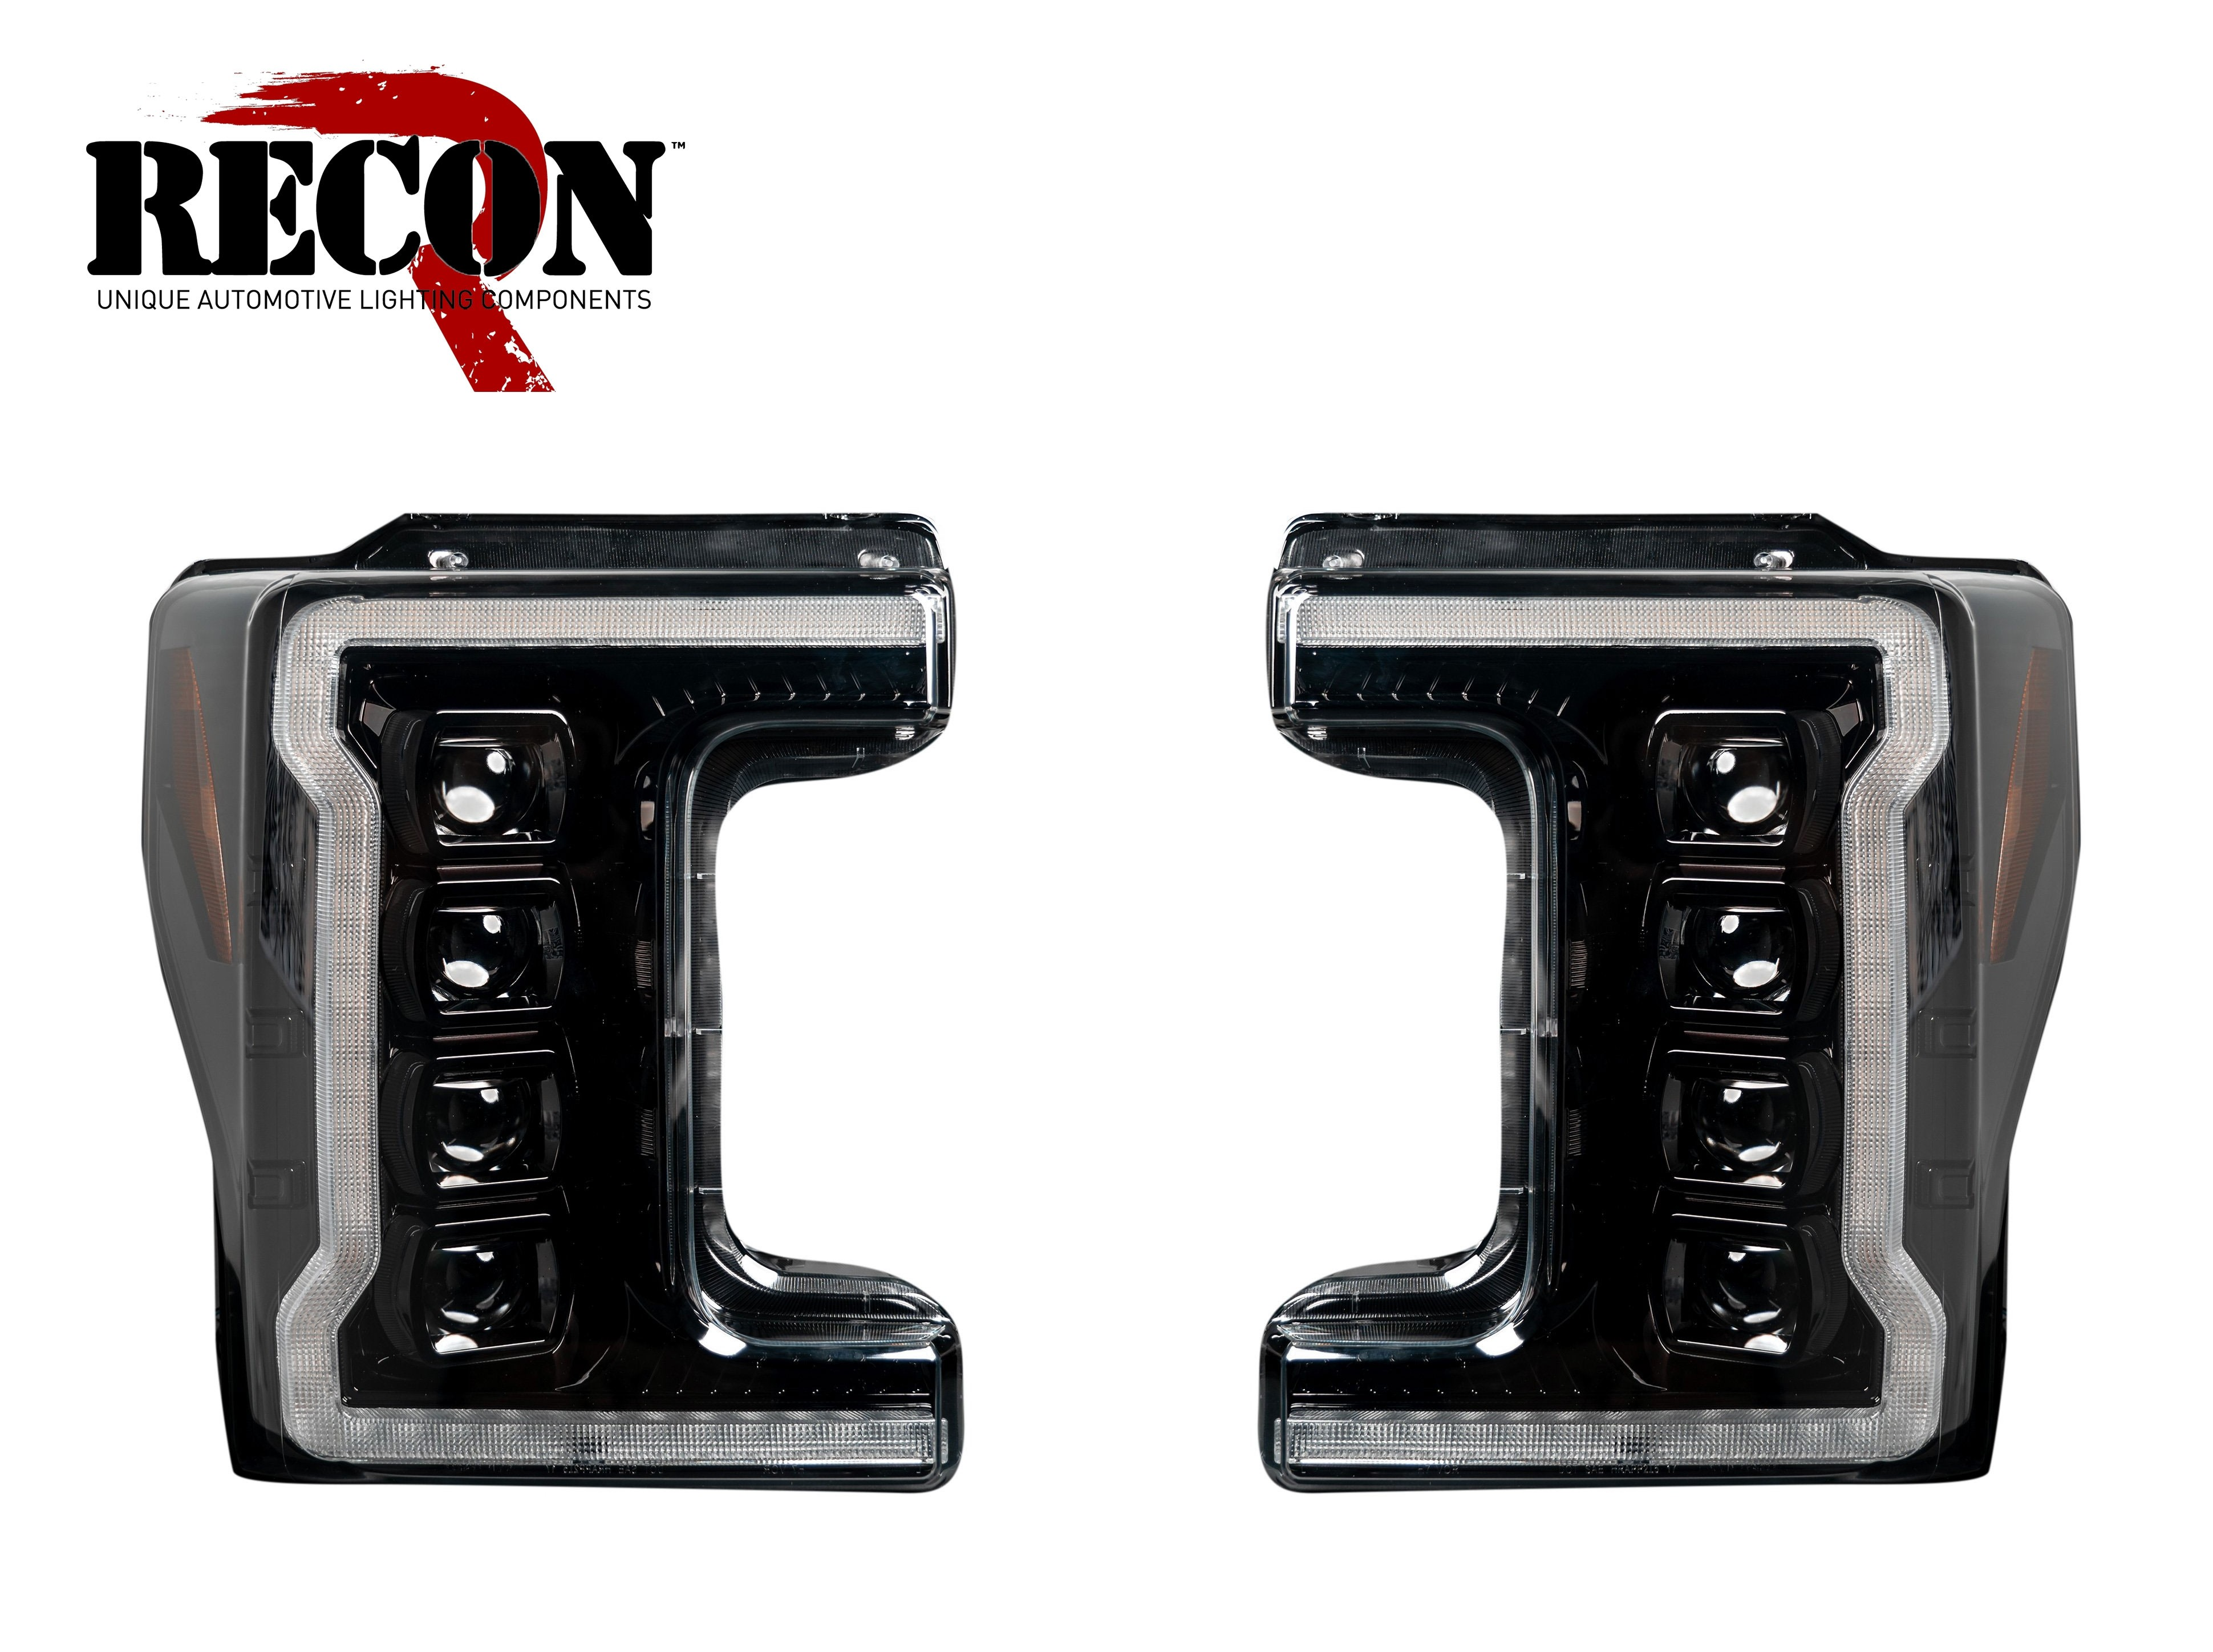 2017-2019 Ford F250 350 450 Super Duty RECON Projector OLED Headlights Smoked